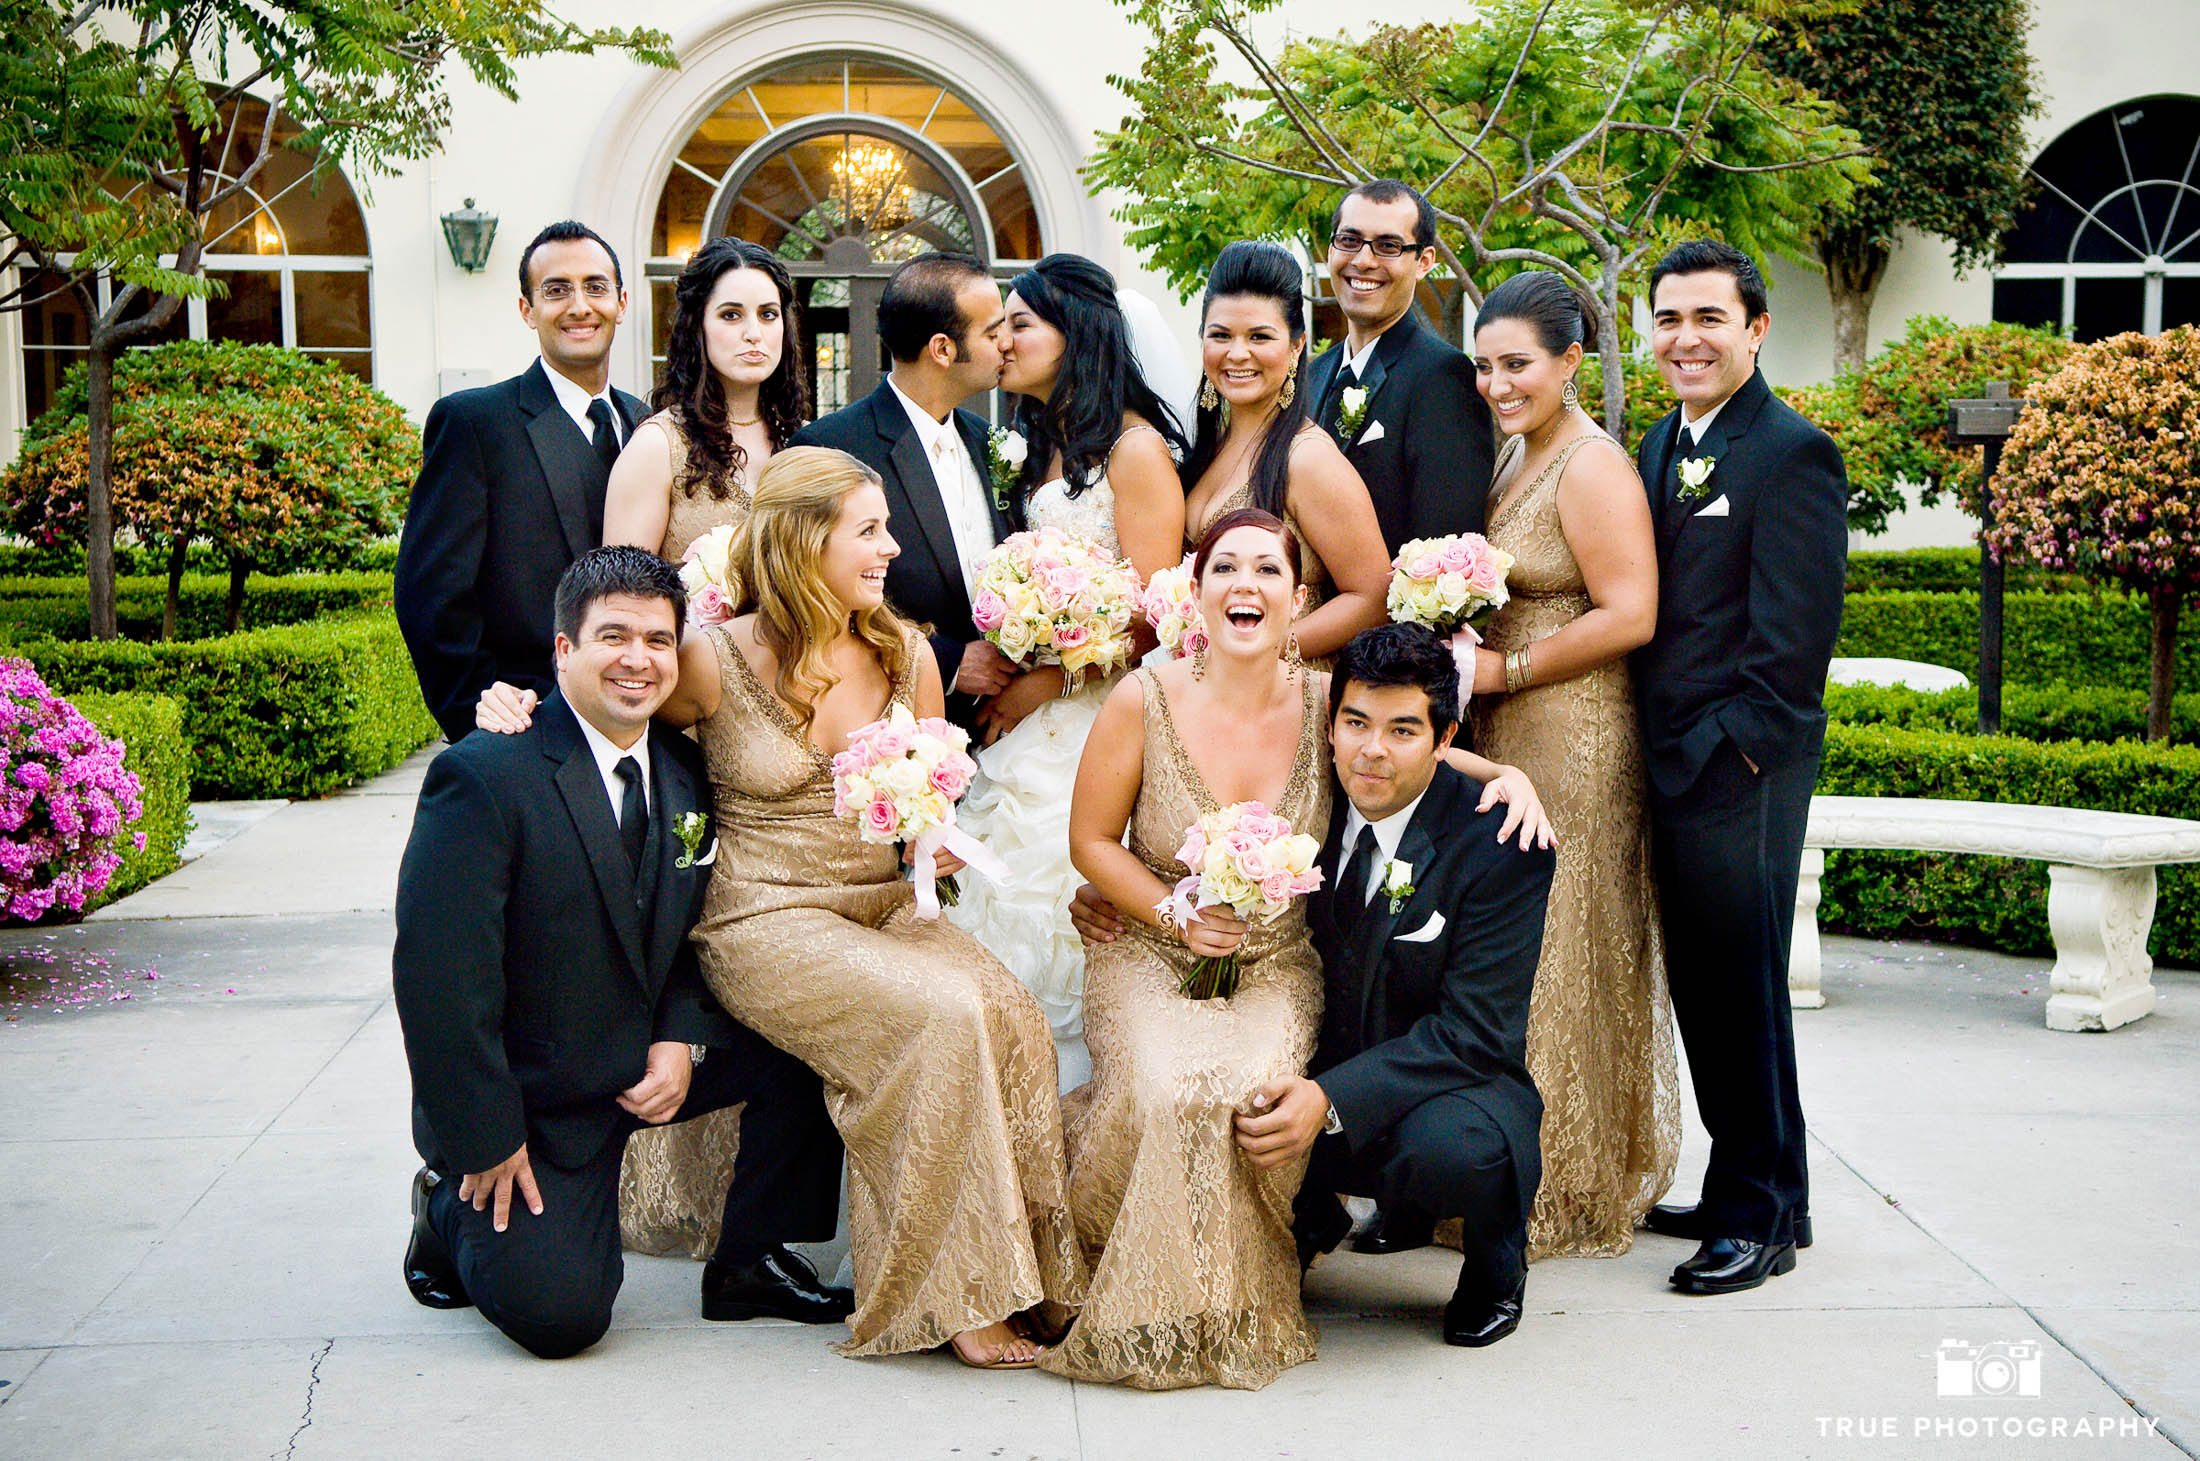 A Bridal Party laughs it up as they take a group photo at the Founders Chapel.